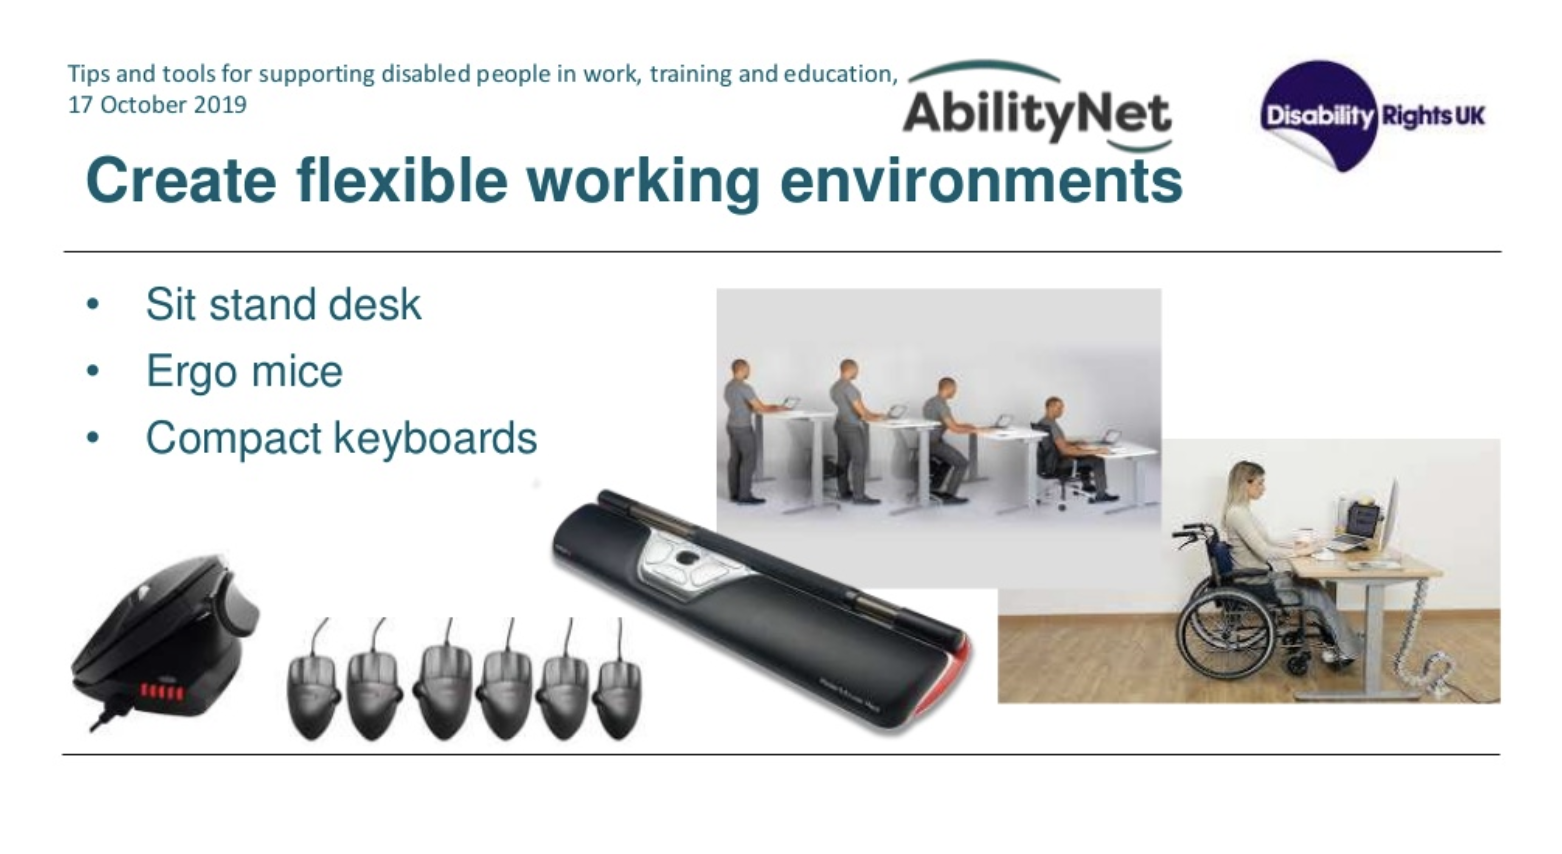 Screenshot of slide from webinar about tools to help disabled people in work and education